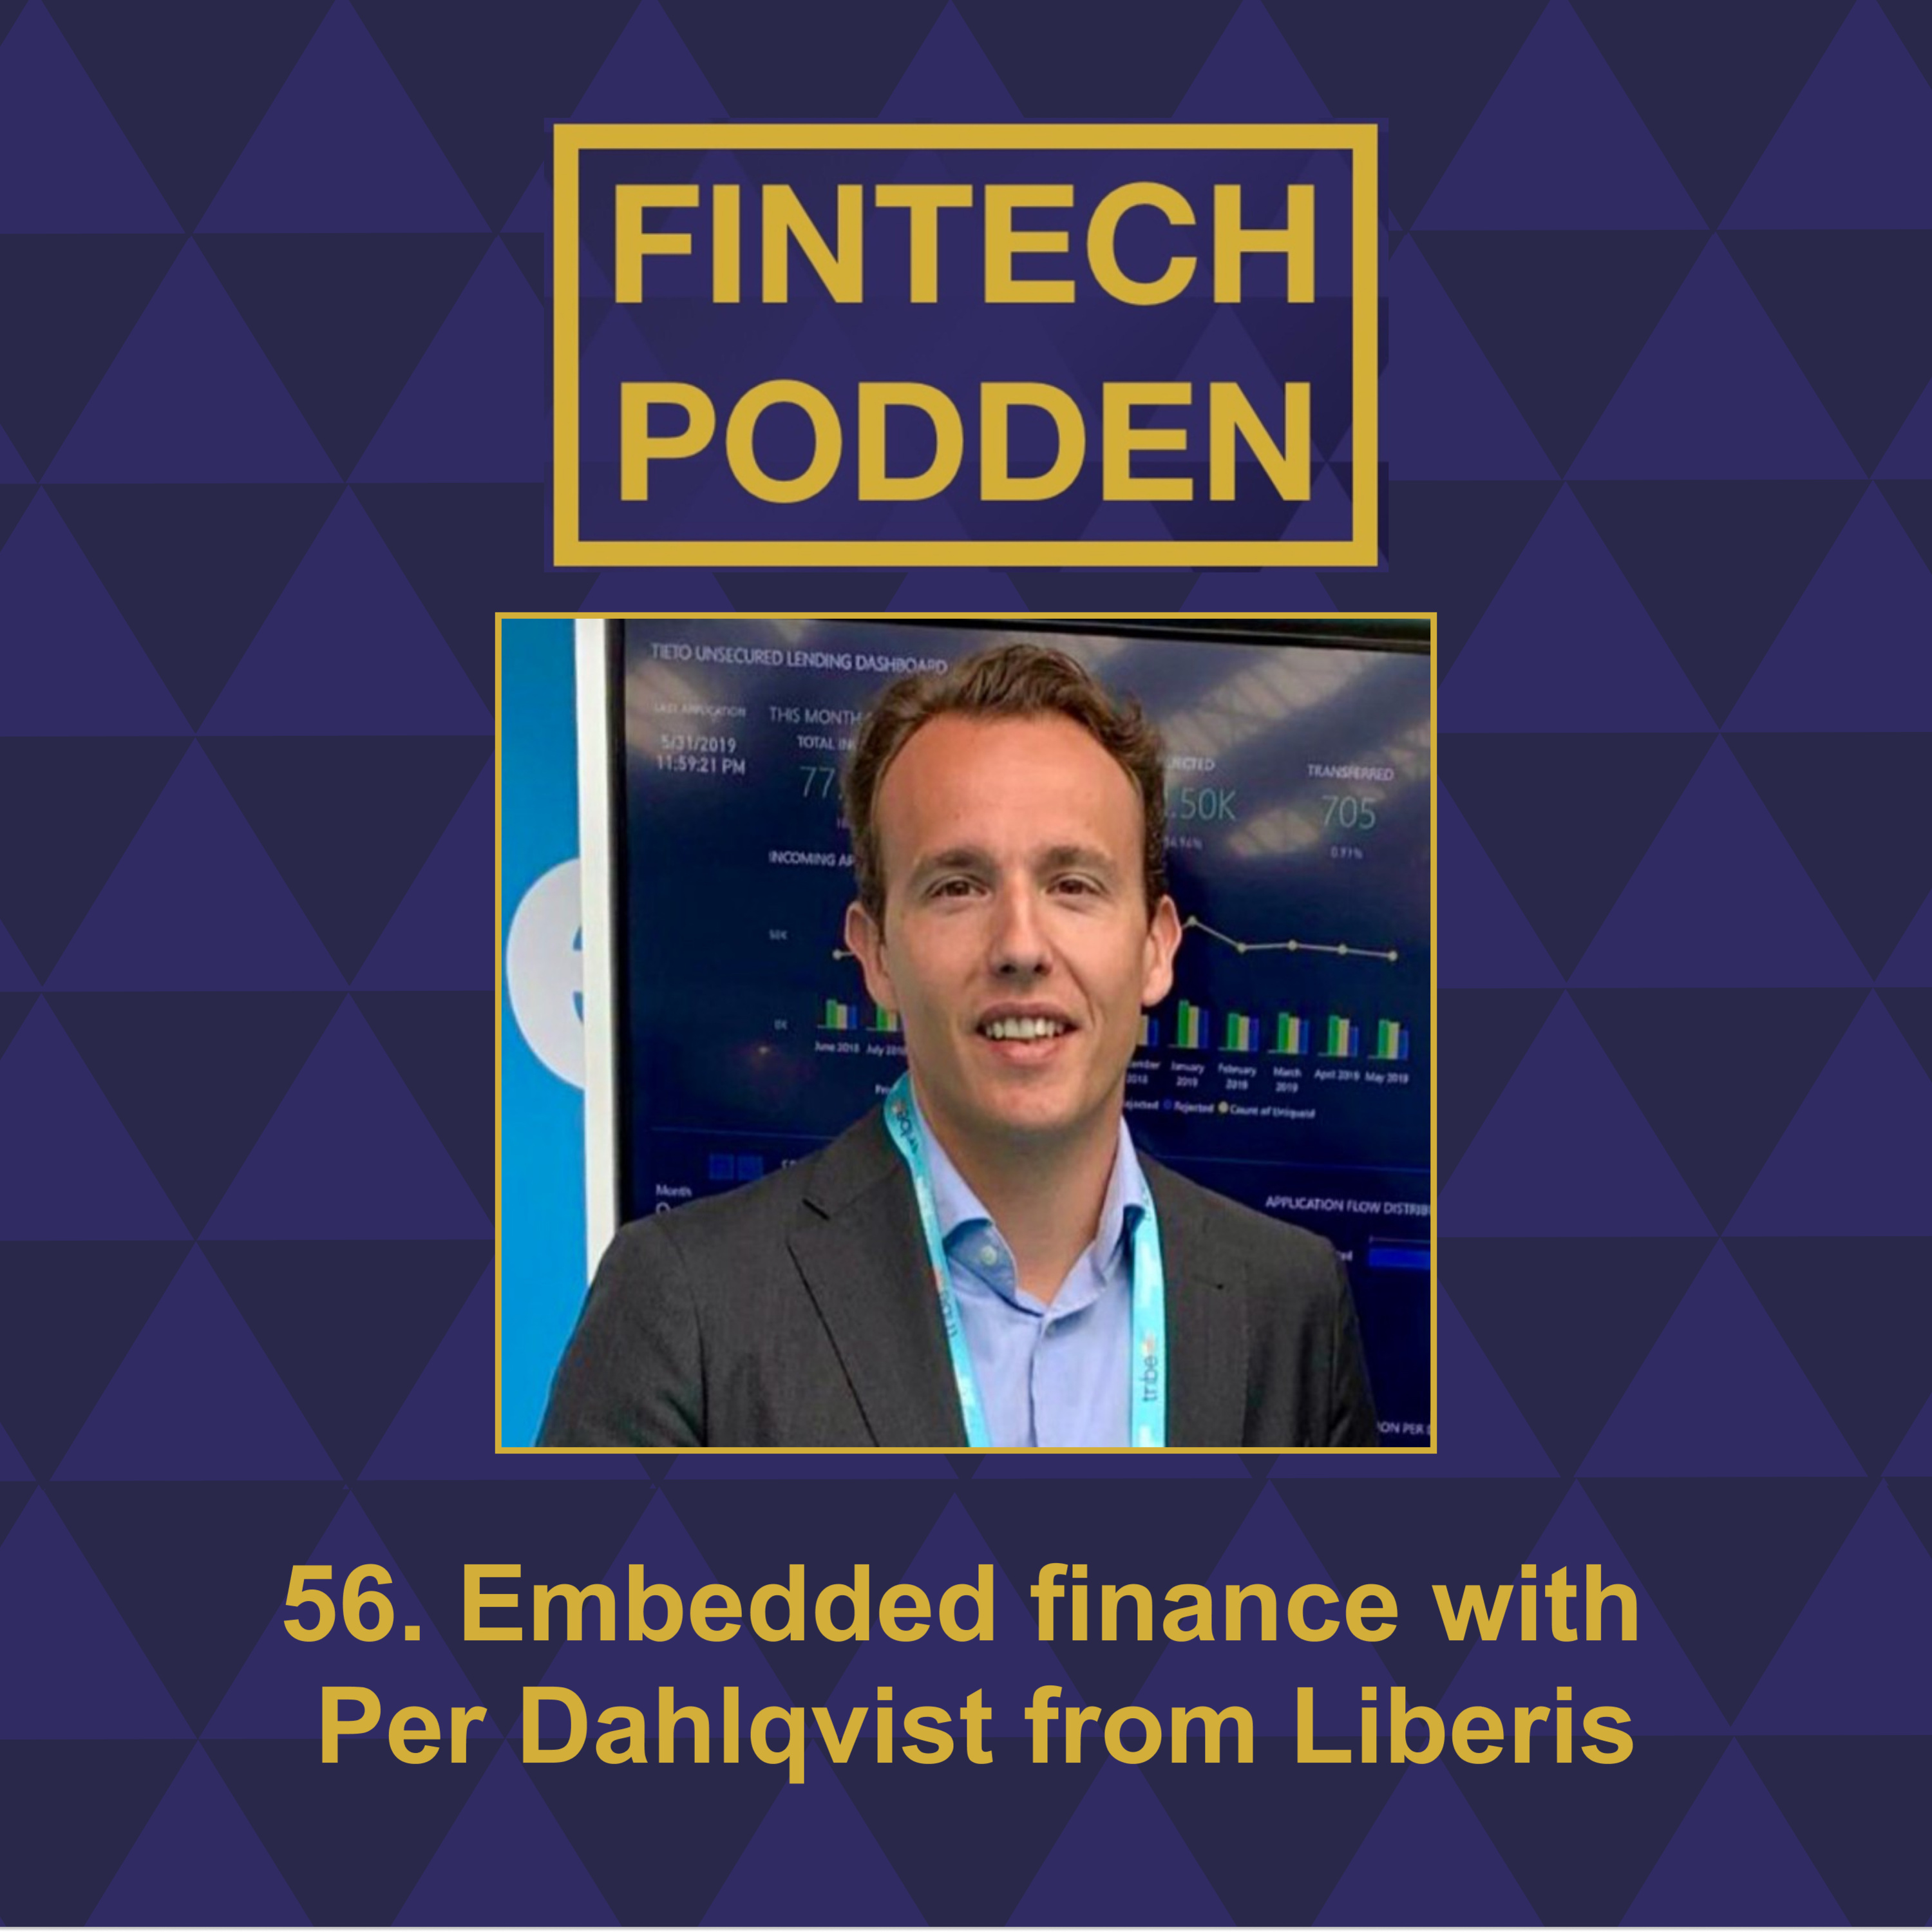 56. Embedded finance with Per Dahlqvist from Liberis